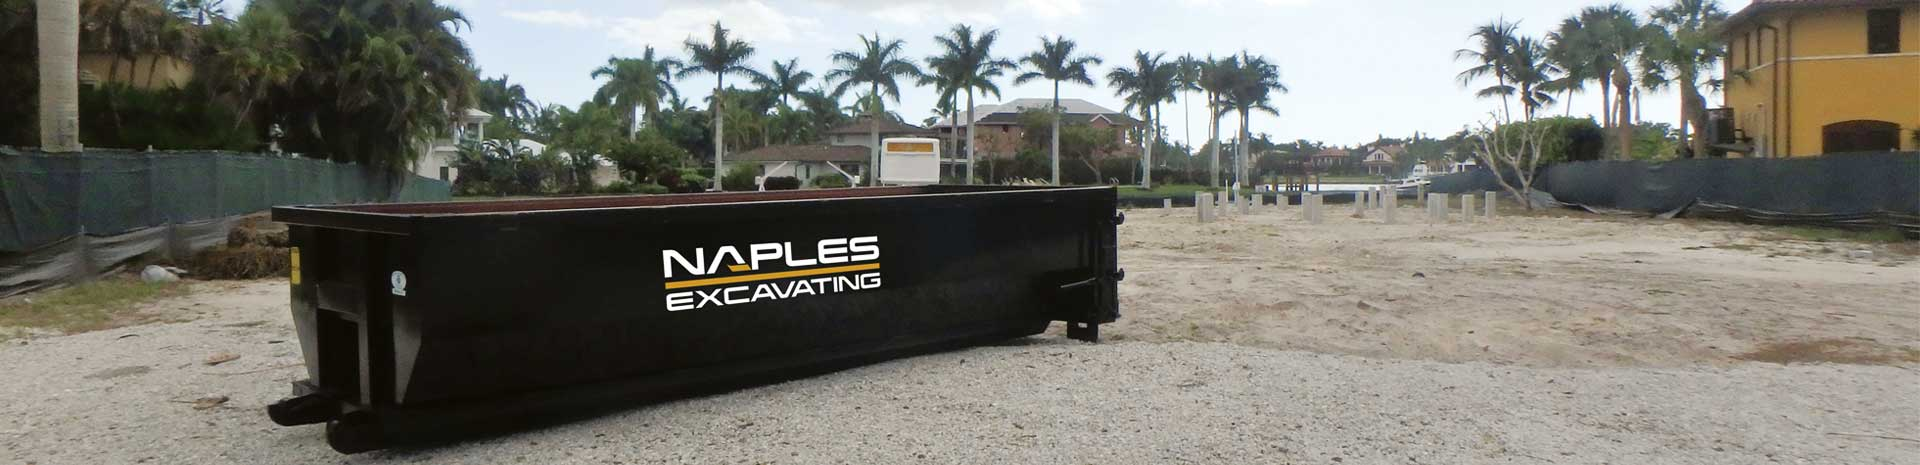 commercial-dumpsters-naples-excavating-naples-florida